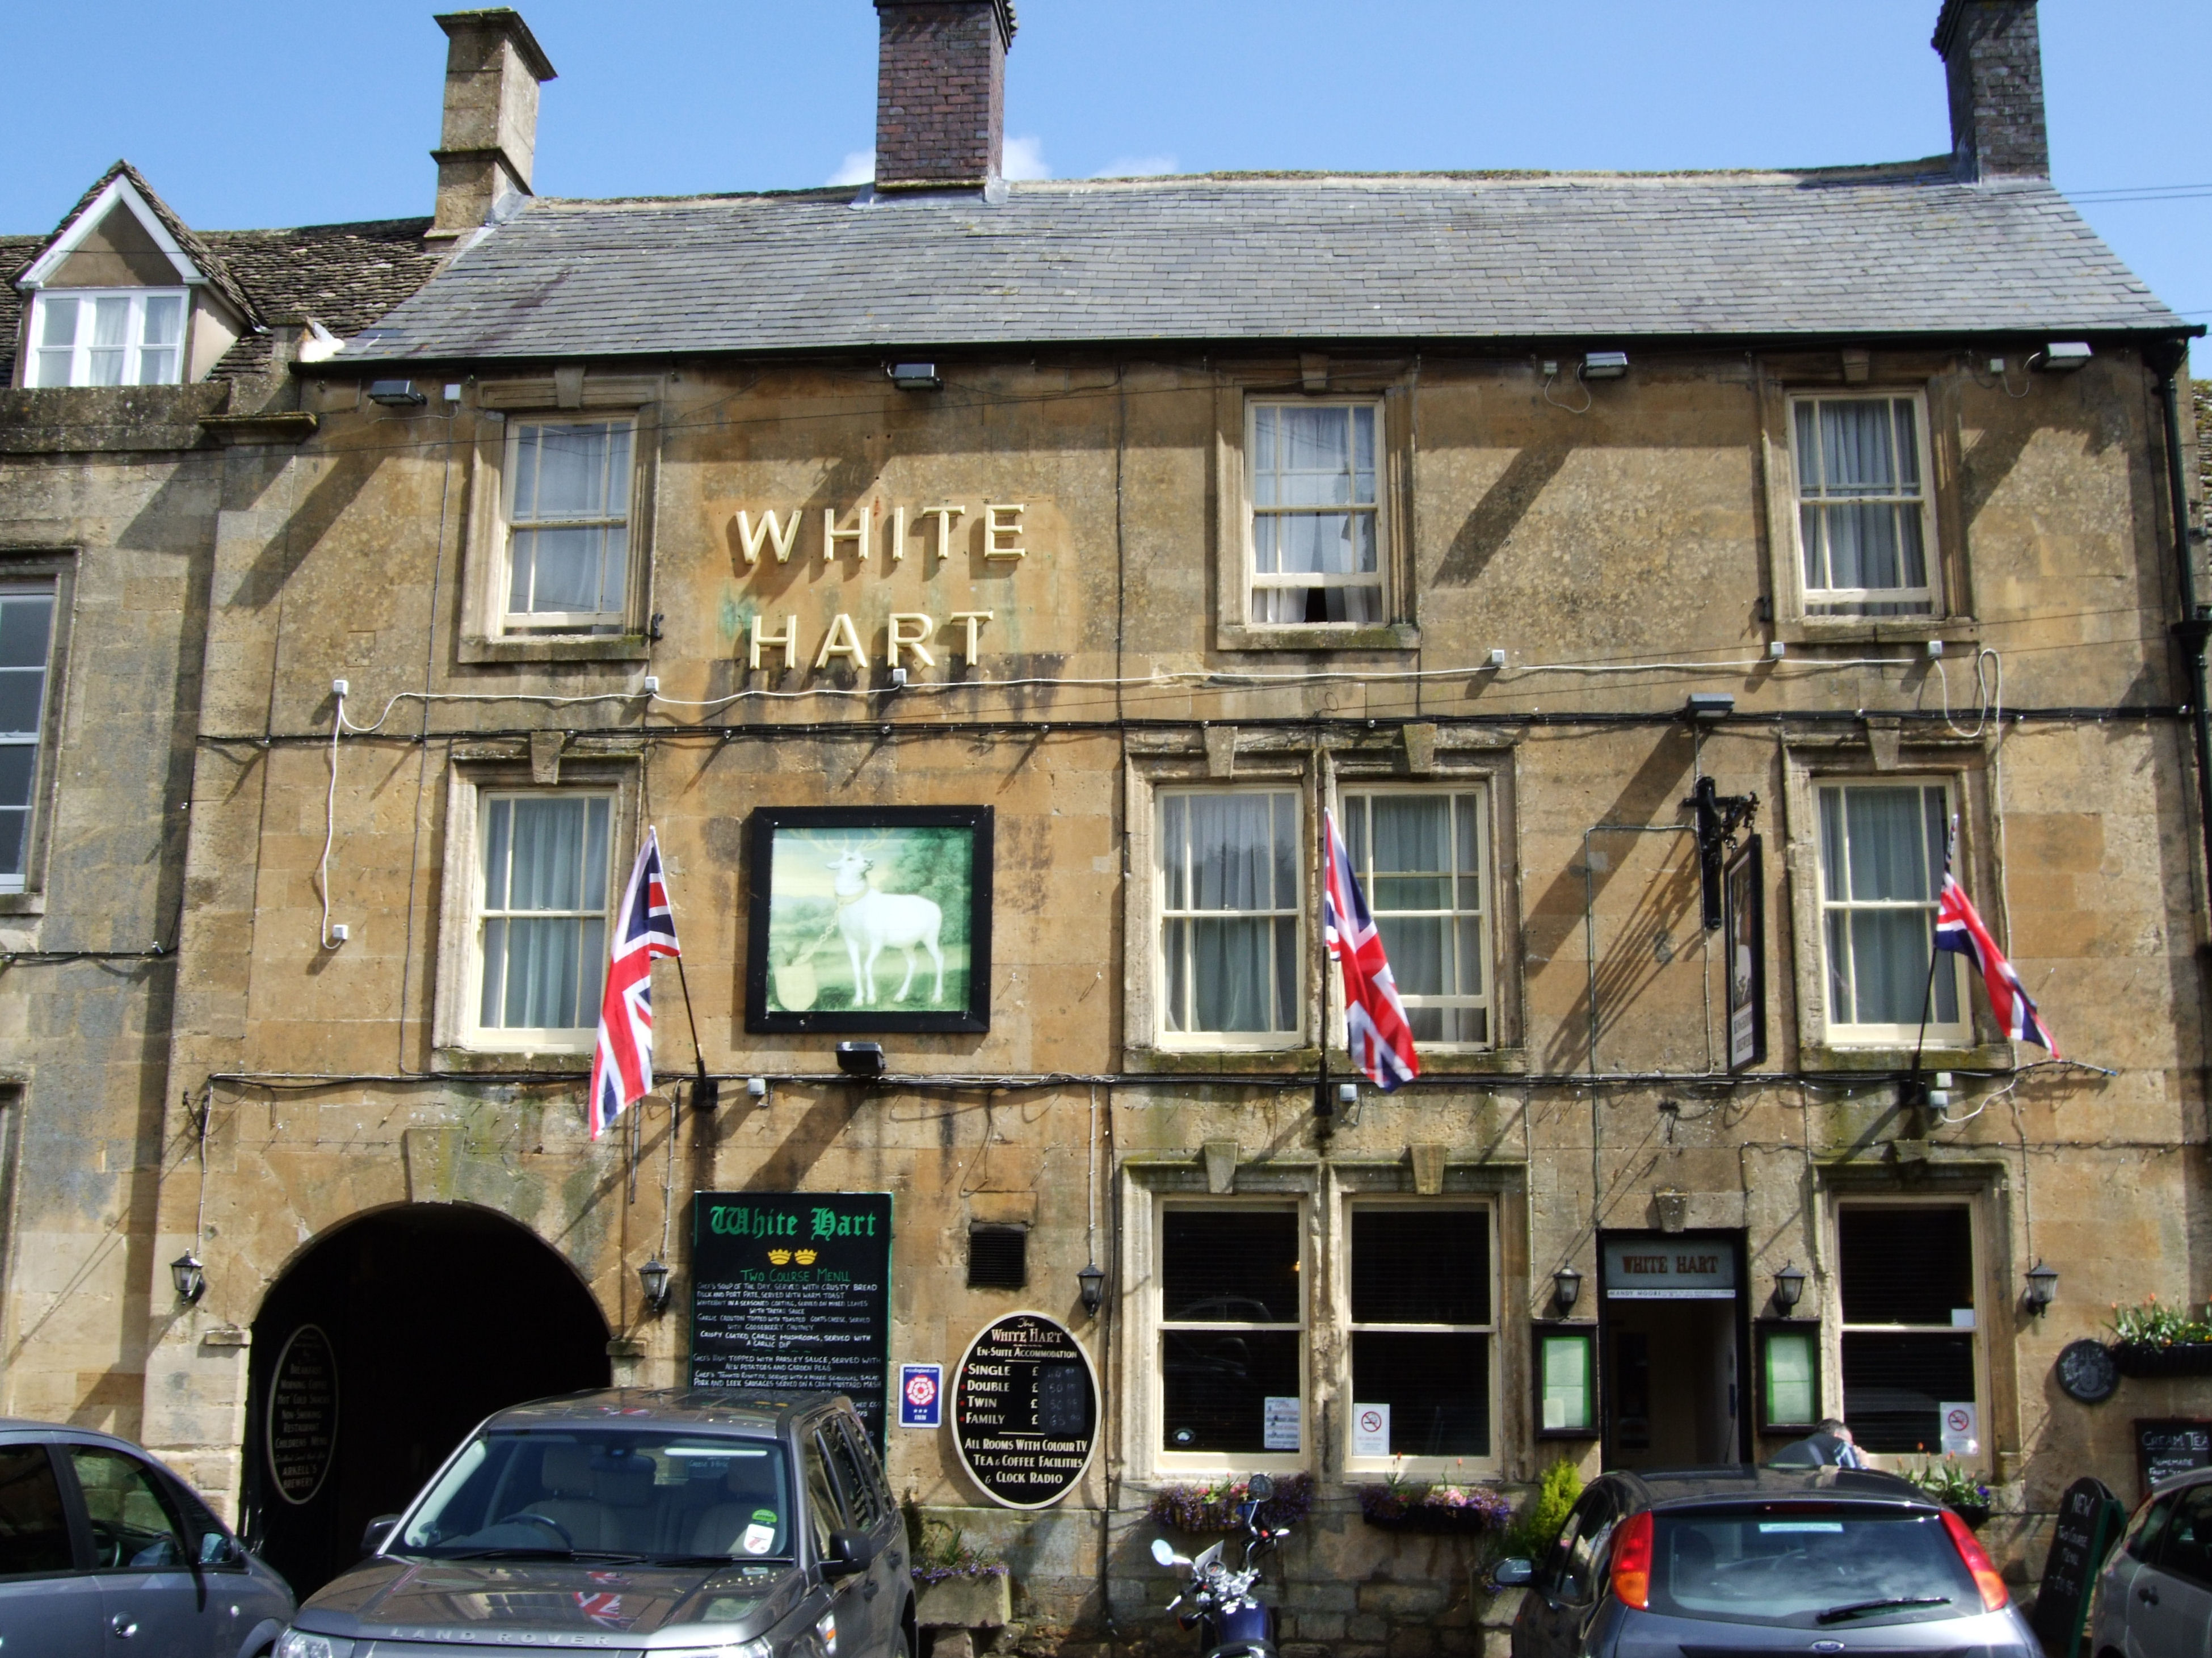 Dog Friendly Pubs Stow On The Wold